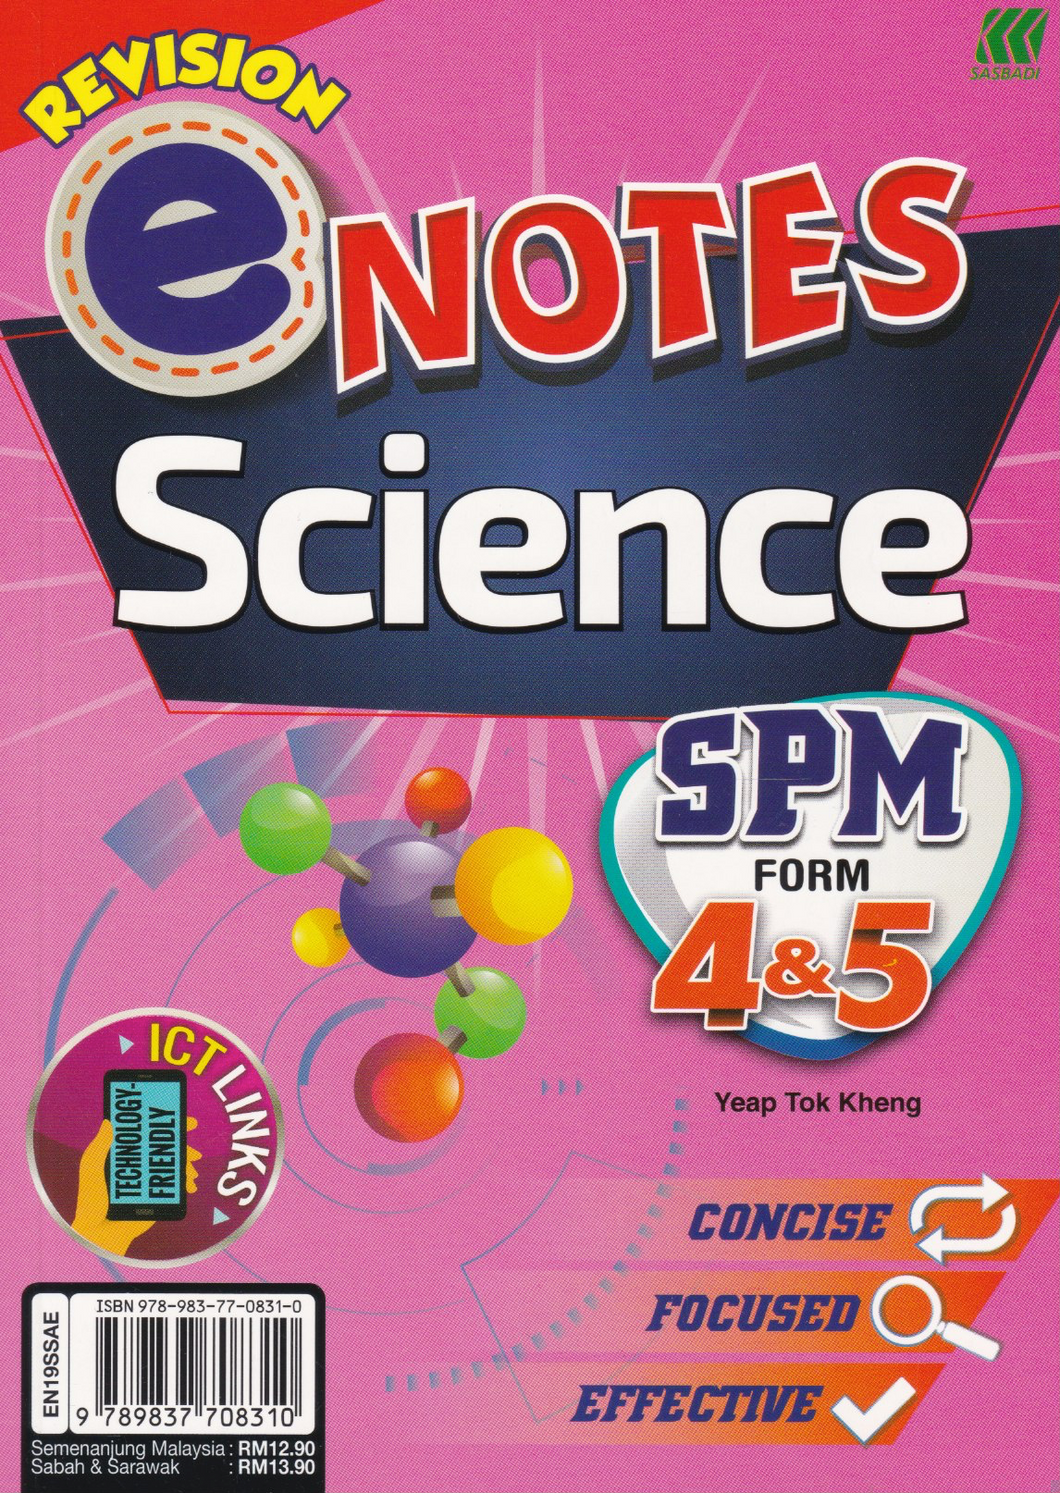 Revision Enotes: Science Form 4,5